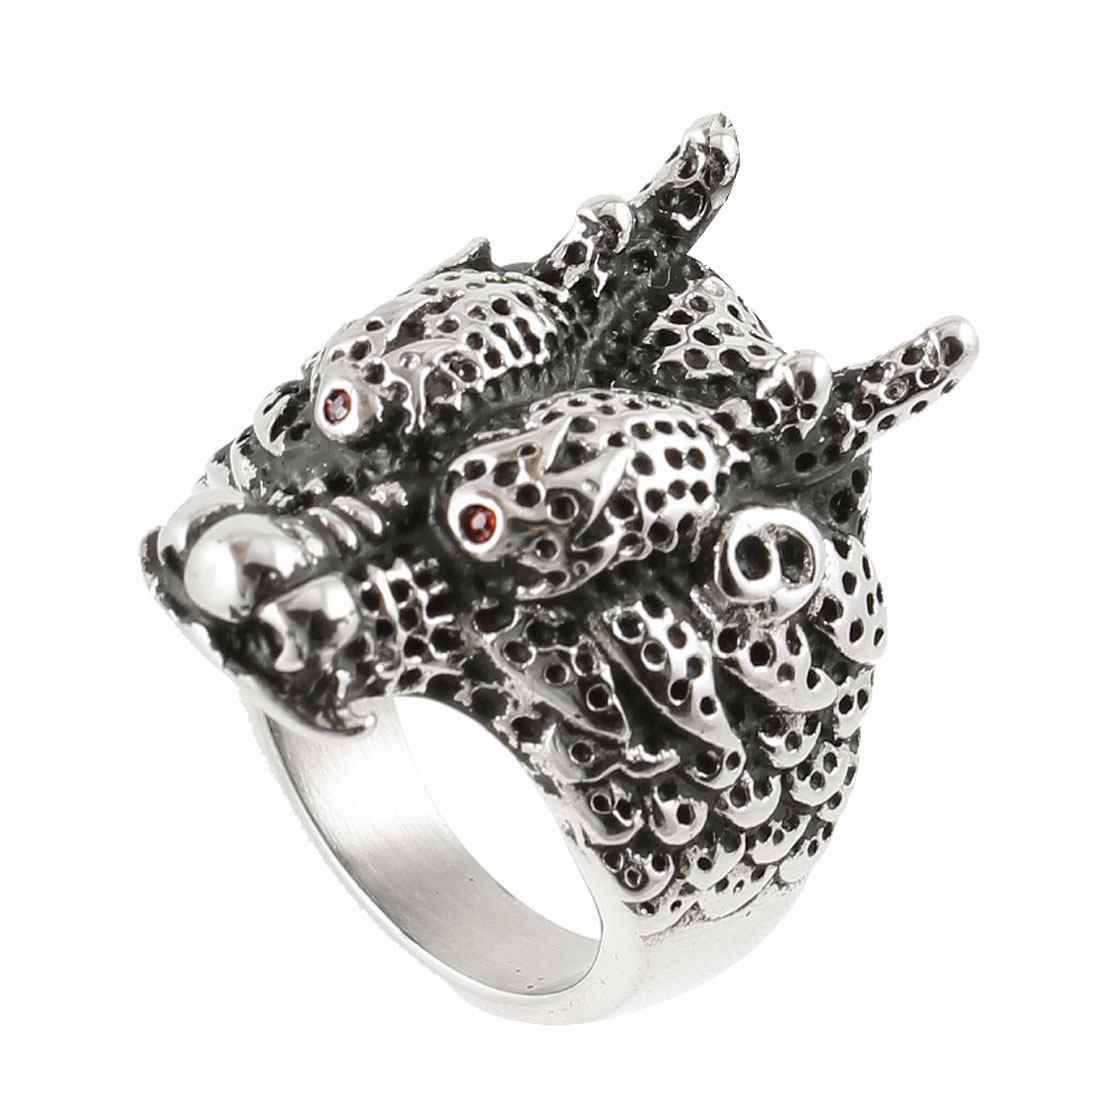 US 8 Stainless Steel Cattle Design Finger Ring Silver Tone for Man